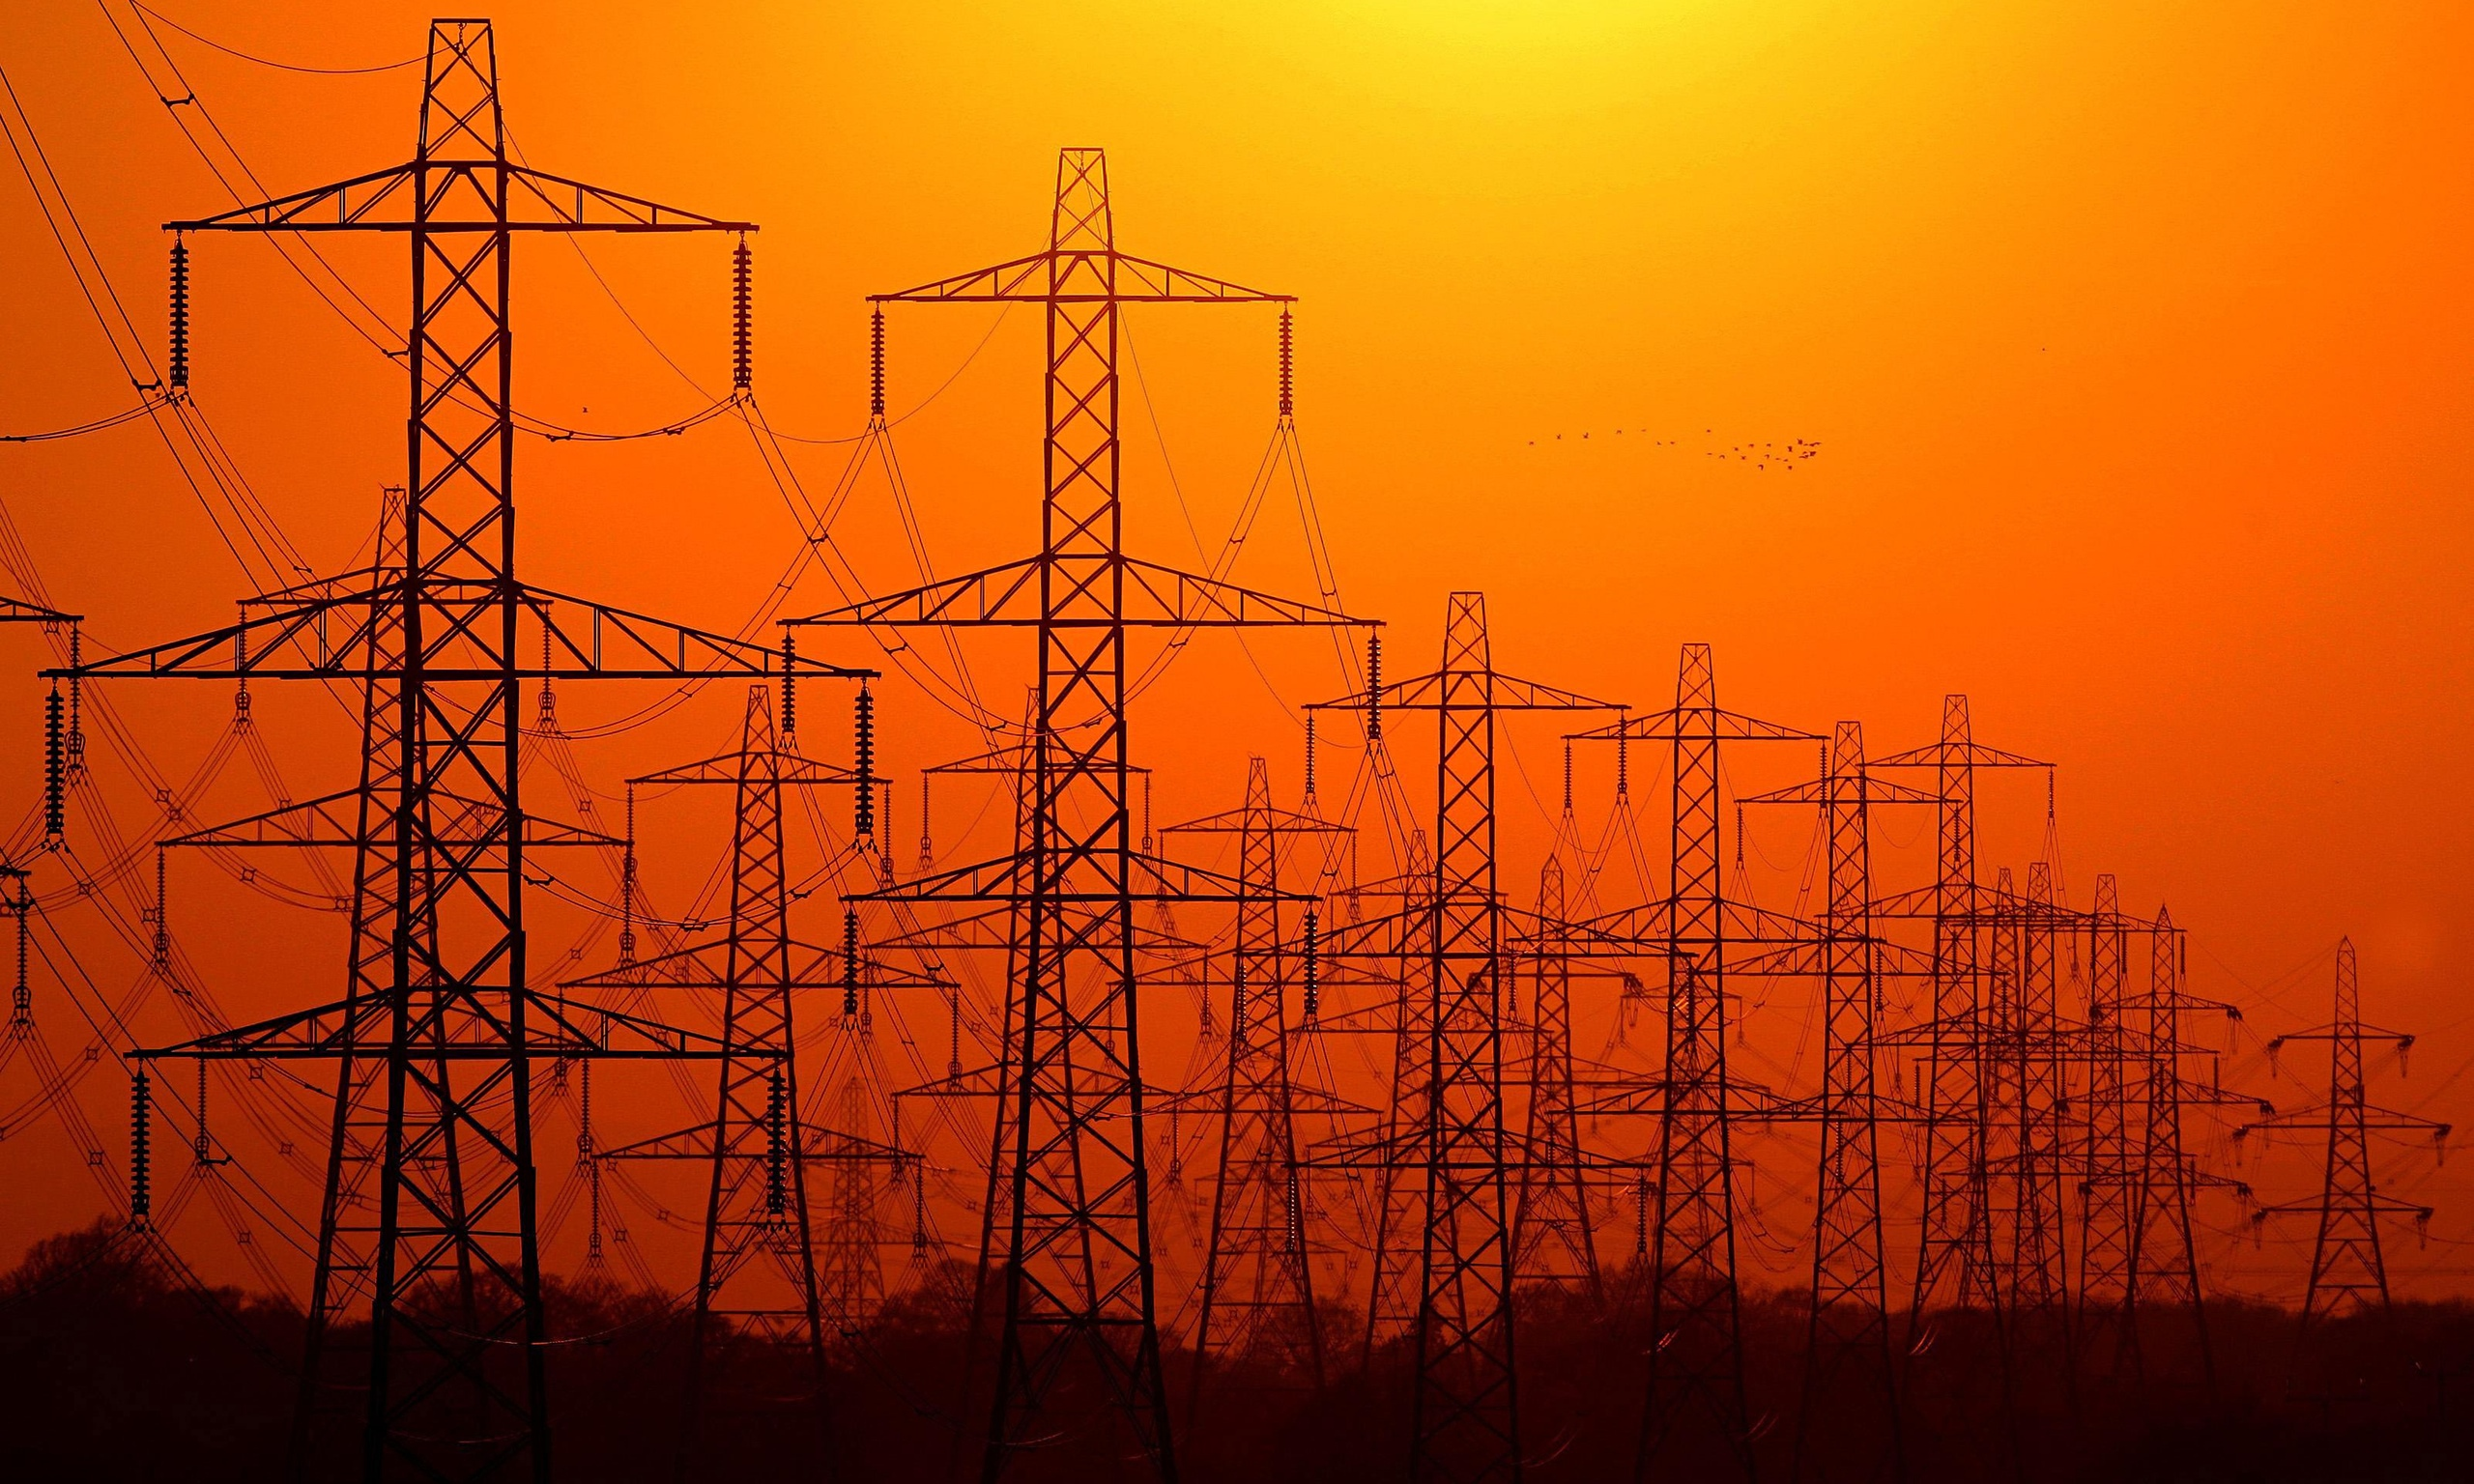 Benin and Niger pay $159M to Nigeria for power purchased, amid electricity crisis